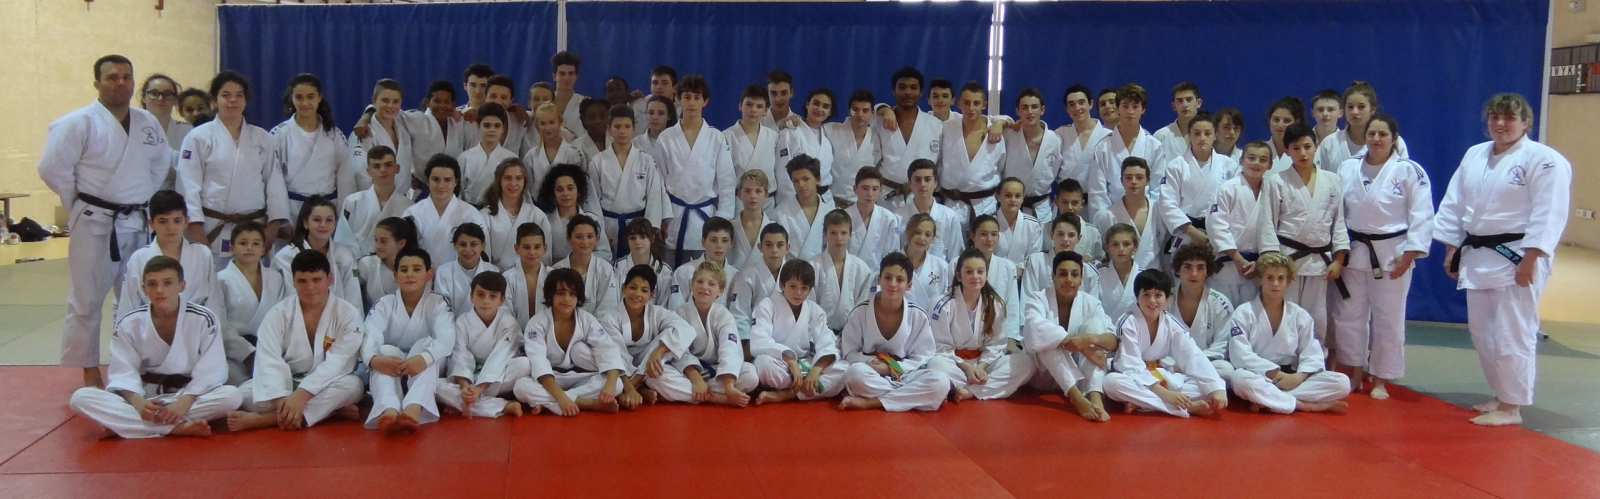 Stage minimes cadets noel 2015